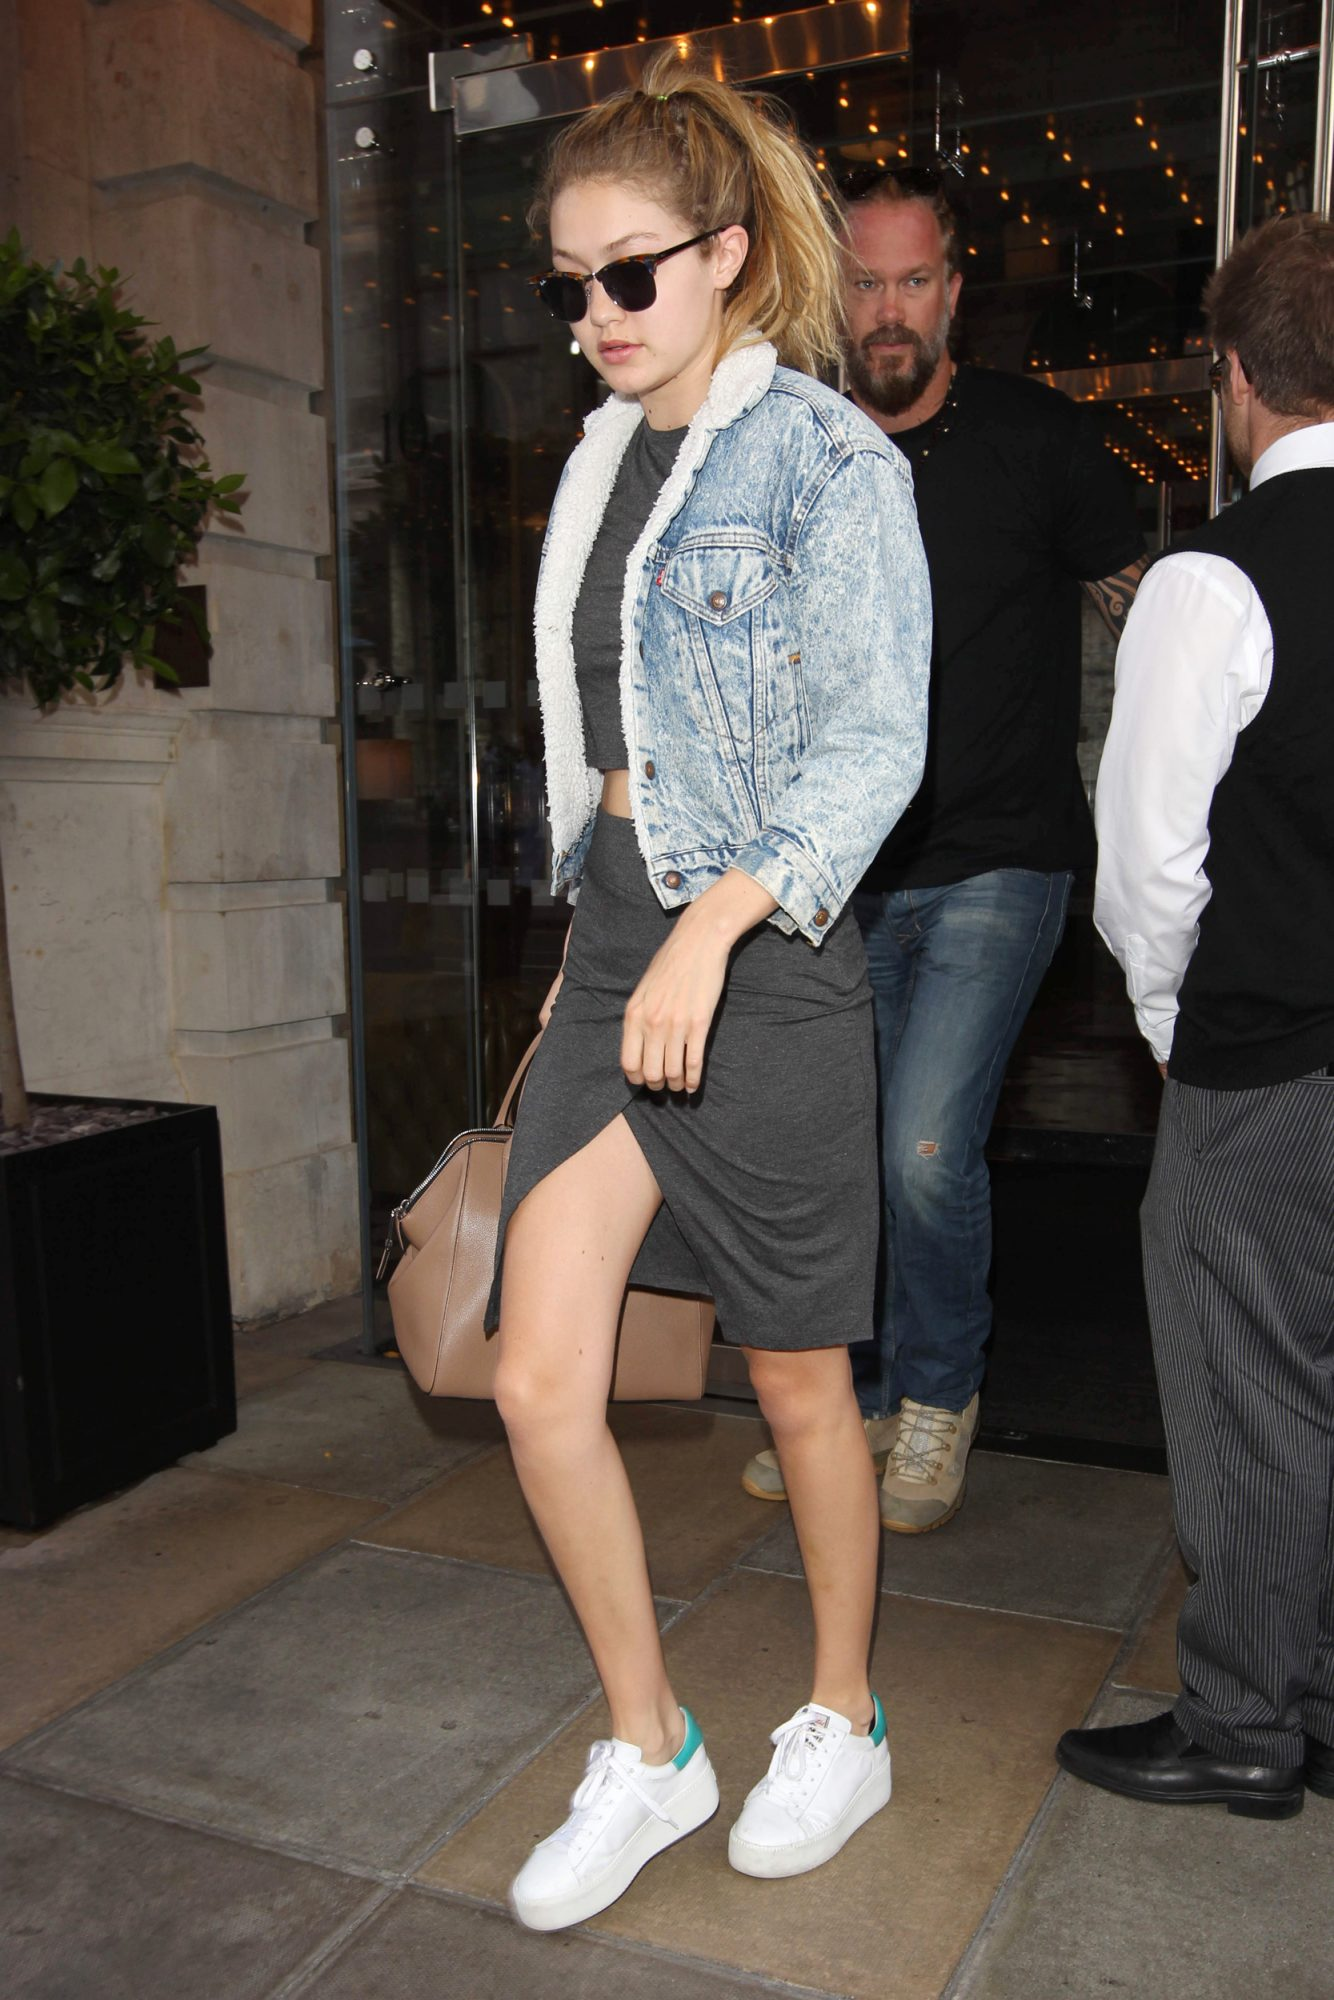 Emily Ratajkowski's Levi's Jacket on Sale at Nordstrom